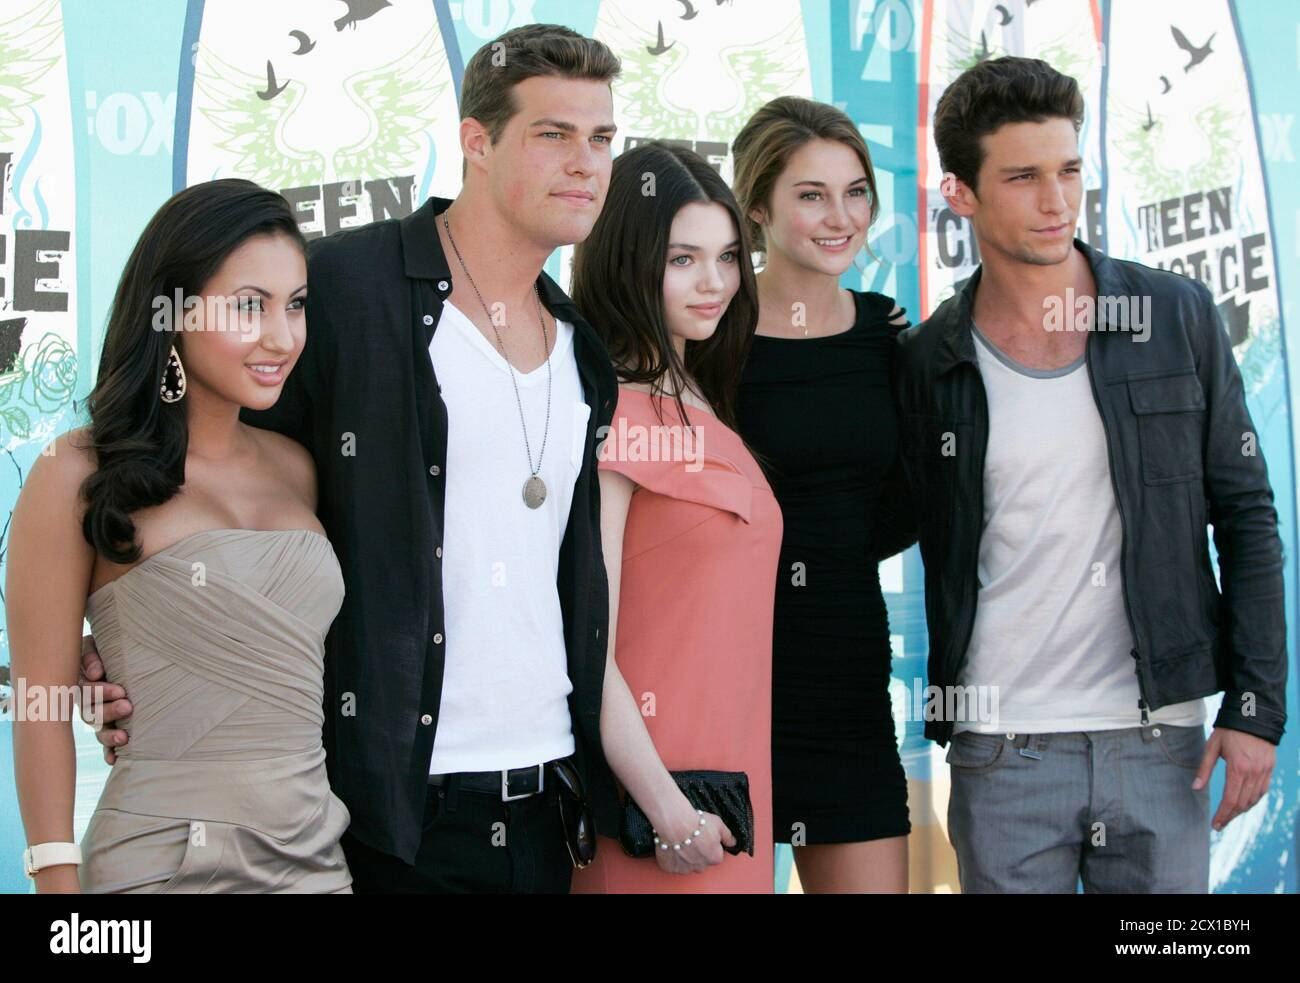 Daren Kagasoff And Shailene Woodley High Resolution Stock Photography And Images Alamy Drowns when the spirit of sierra heuermann supernaturally throws him into a swimming pool and he becomes caught in the pool cover; https www alamy com actors from l francia raisa greg finley india eisley shailene woodley and daren kagasoff arrive at the teen choice 2010 awards in los angeles august 8 2010 reutersjason redmond united states tags entertainment teenchoicearrivals image377430133 html